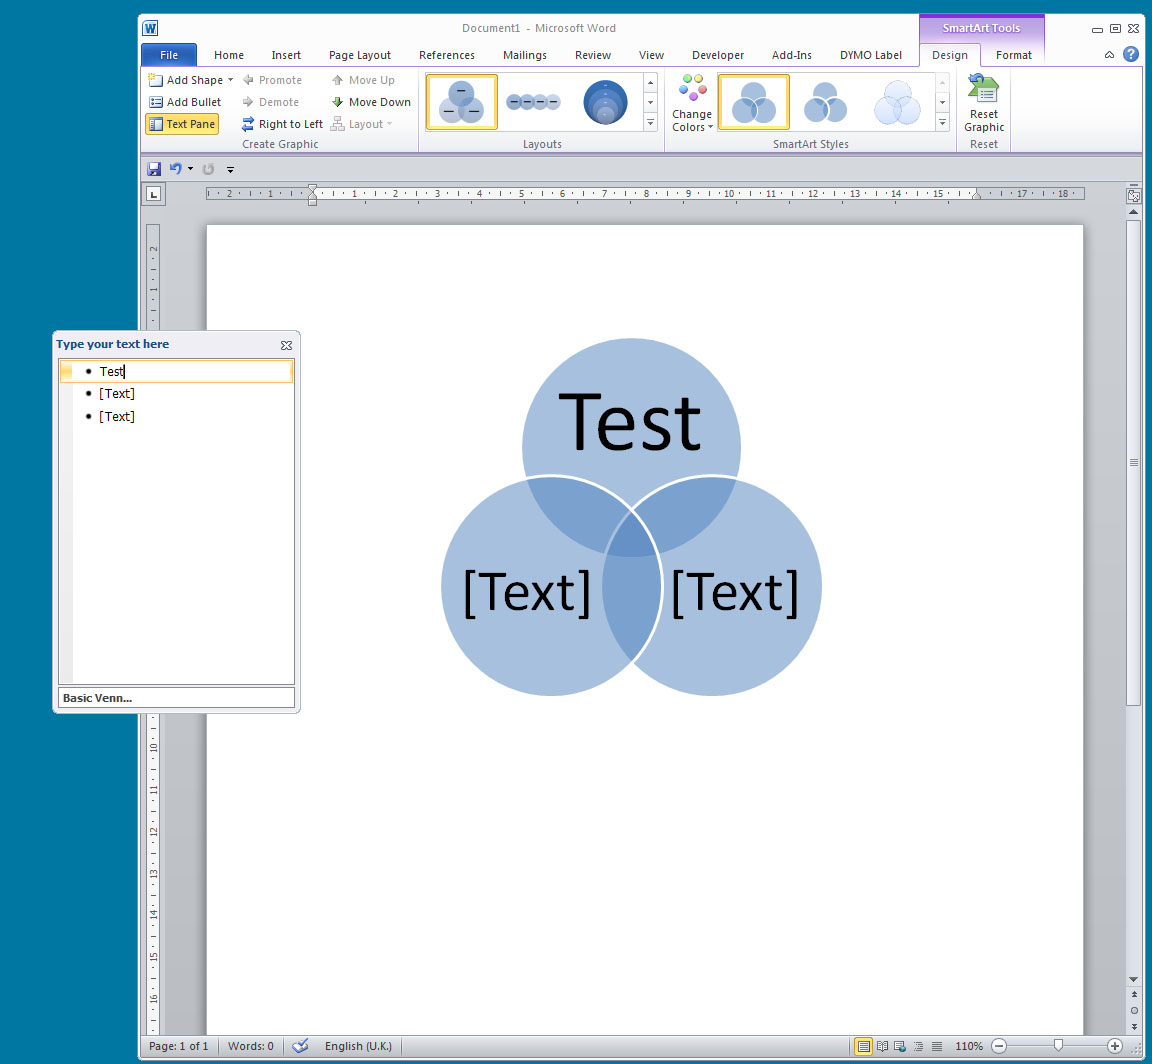 How To Make A Venn Diagram On Word Add Text To Overlap Julia Jacobs